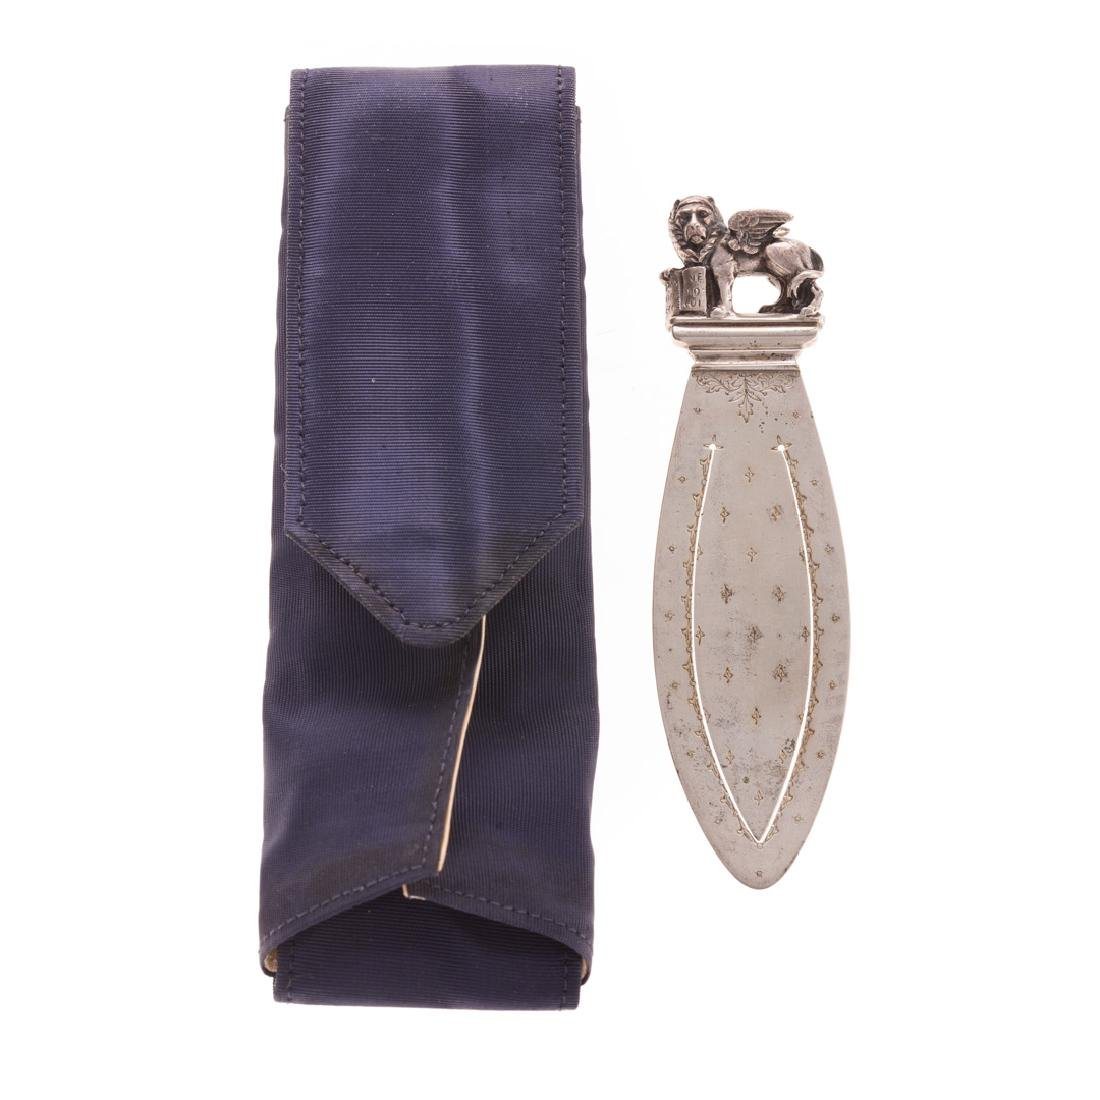 A Silver St. Mark's Lion Bookmark by Buccellati - 5